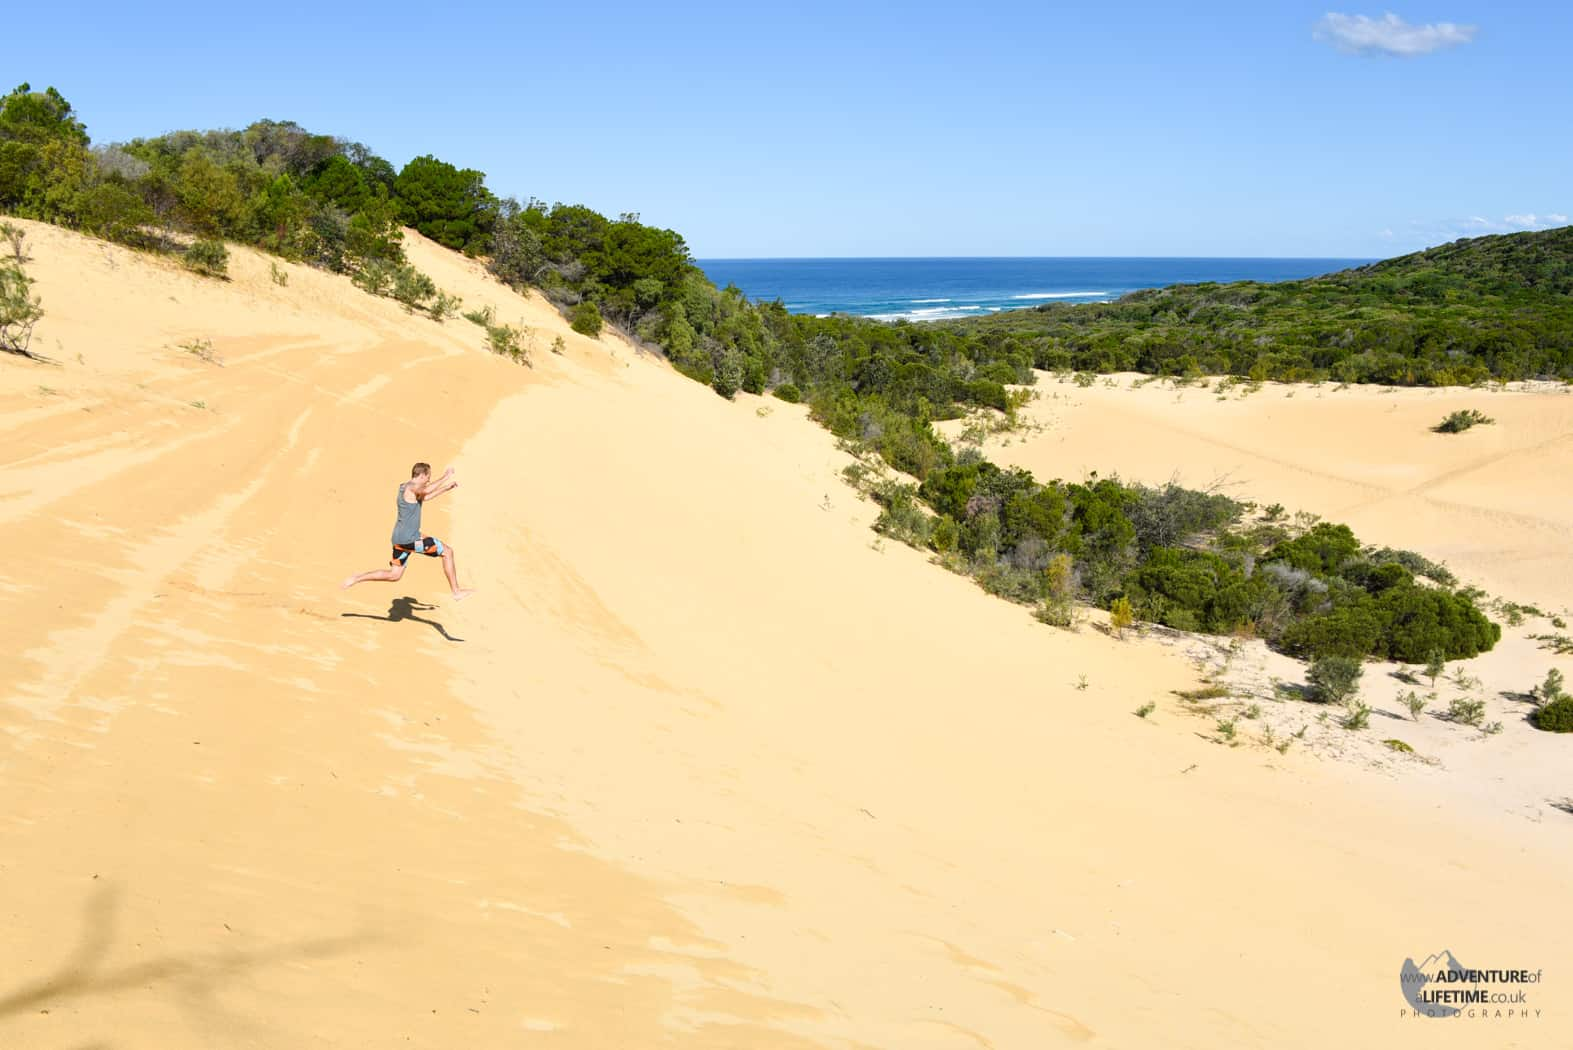 Jumping down a sand dune on Fraser Island